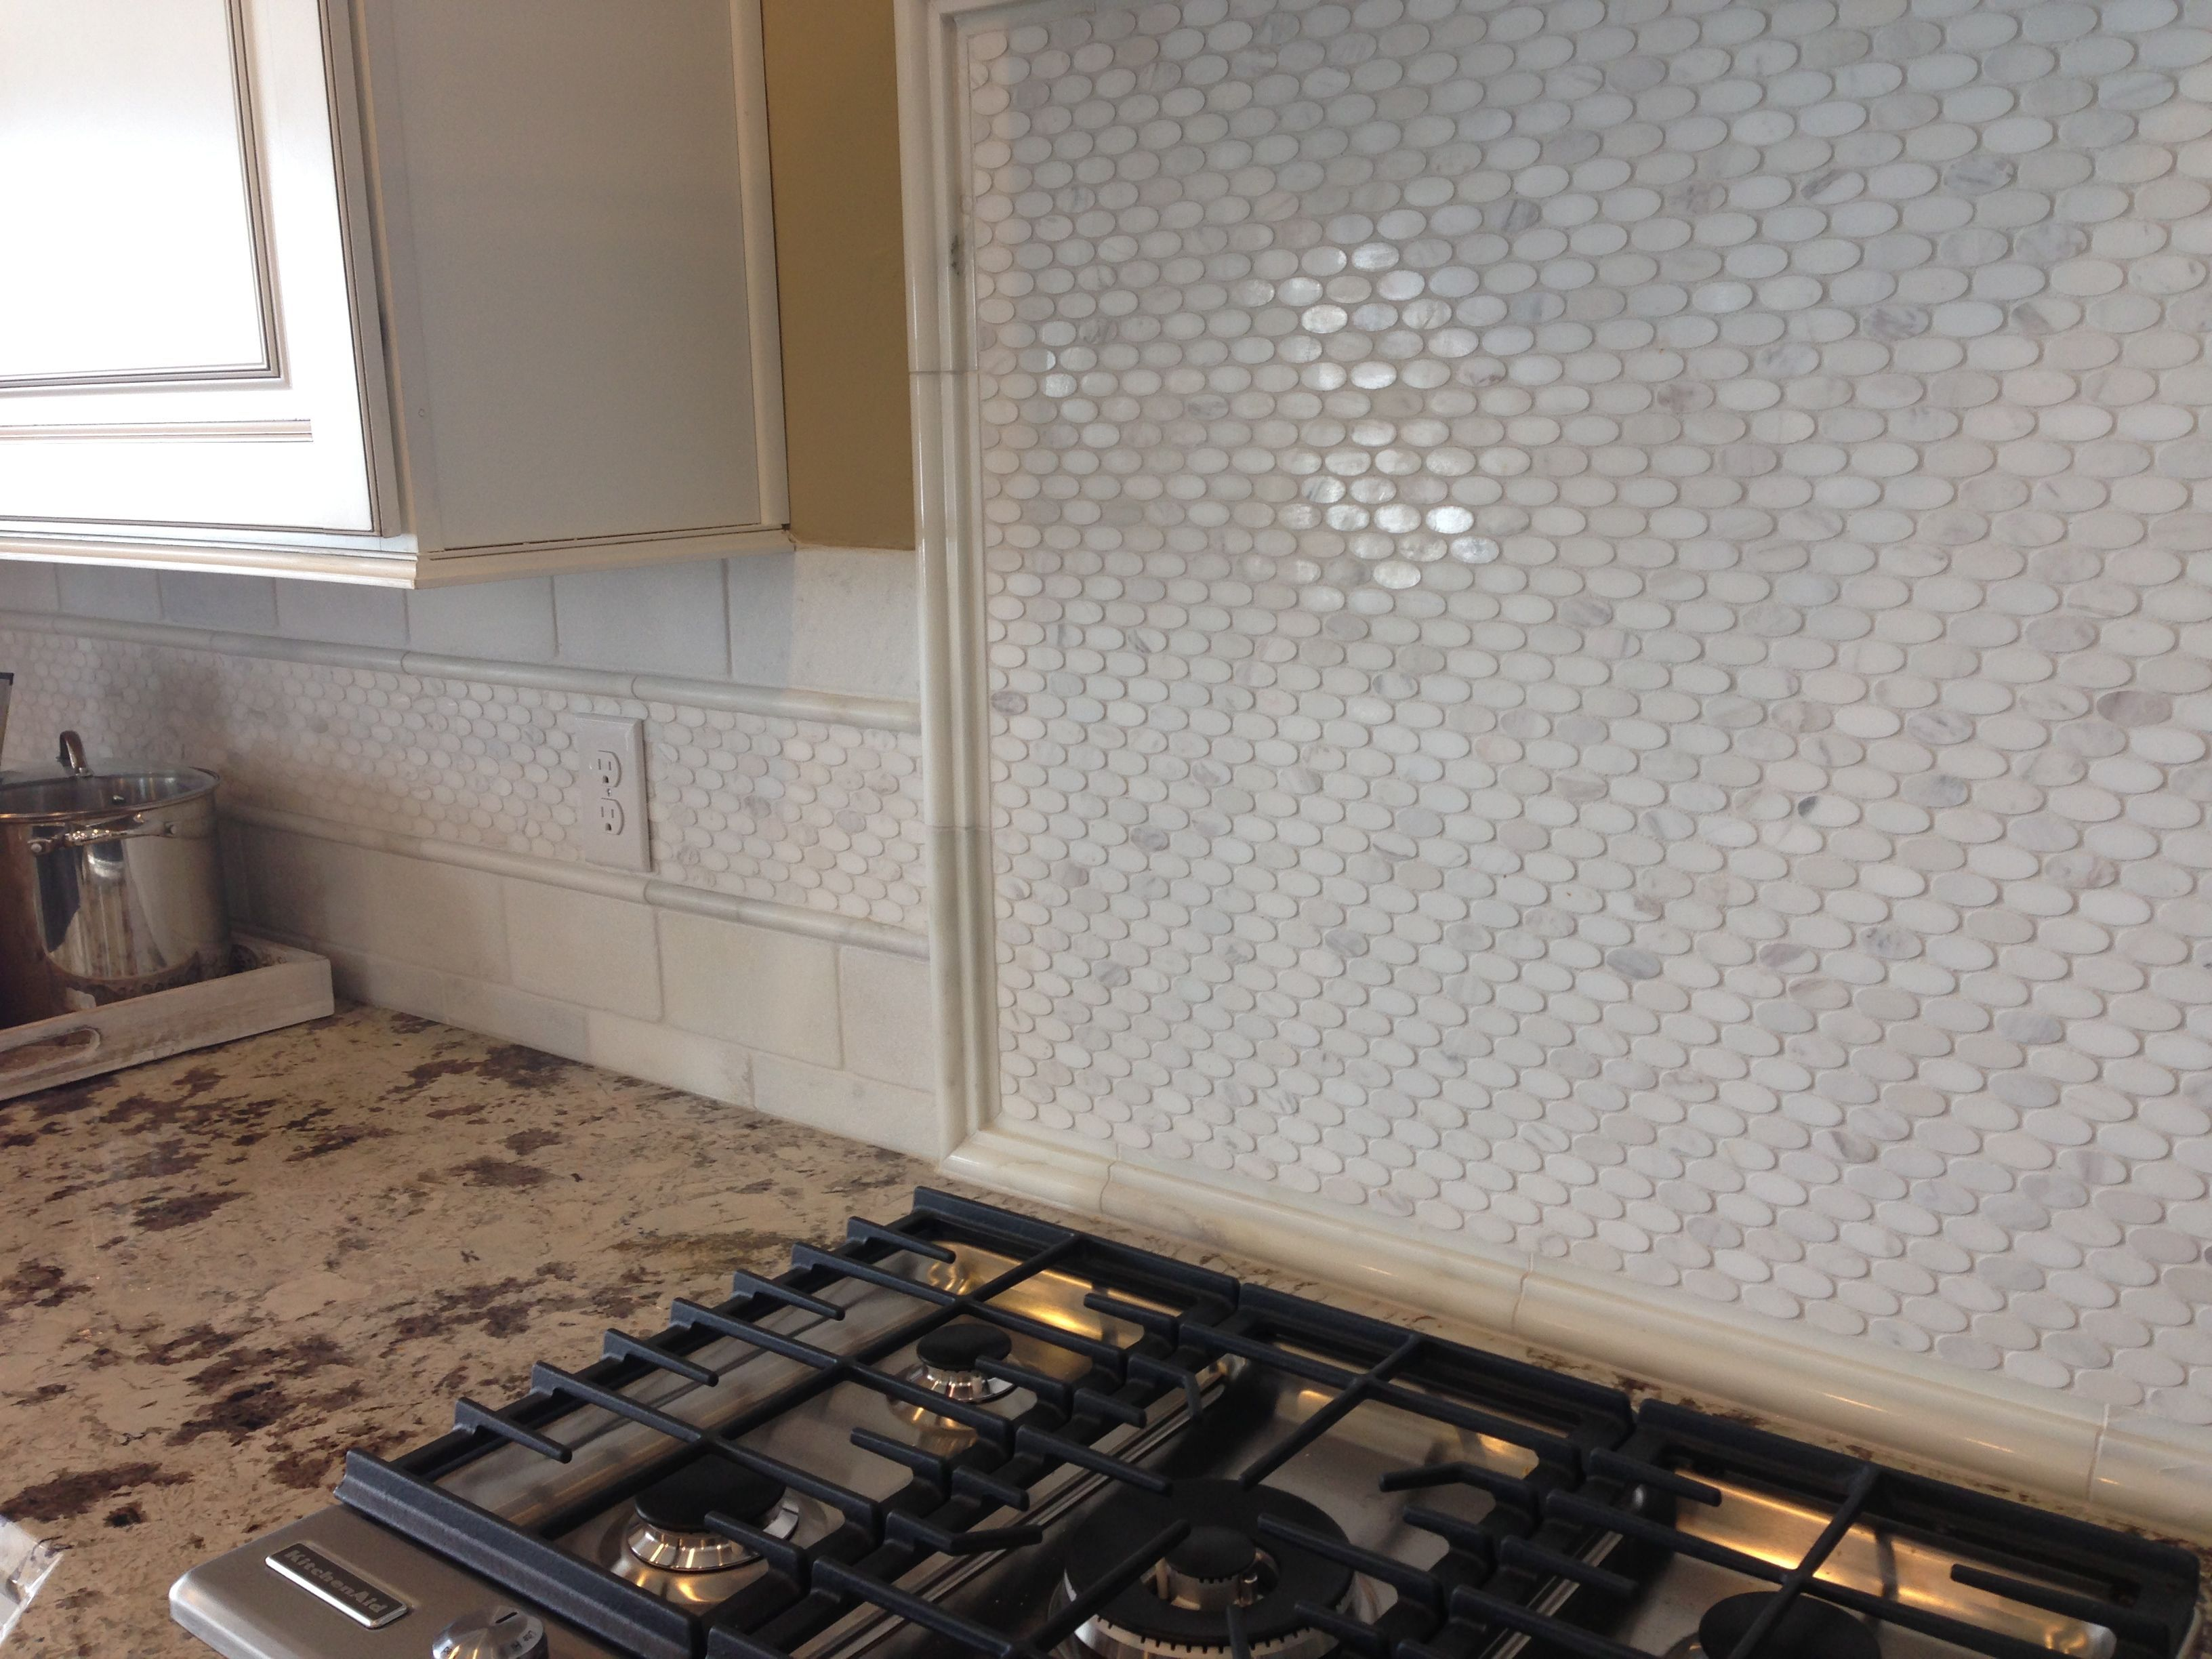 Backsplash tile patterns for easy cleaning countertops idea modern backsplash tile patterns for easy cleaning countertops idea modern kitchen backsplash decor by backsplash tile dailygadgetfo Image collections